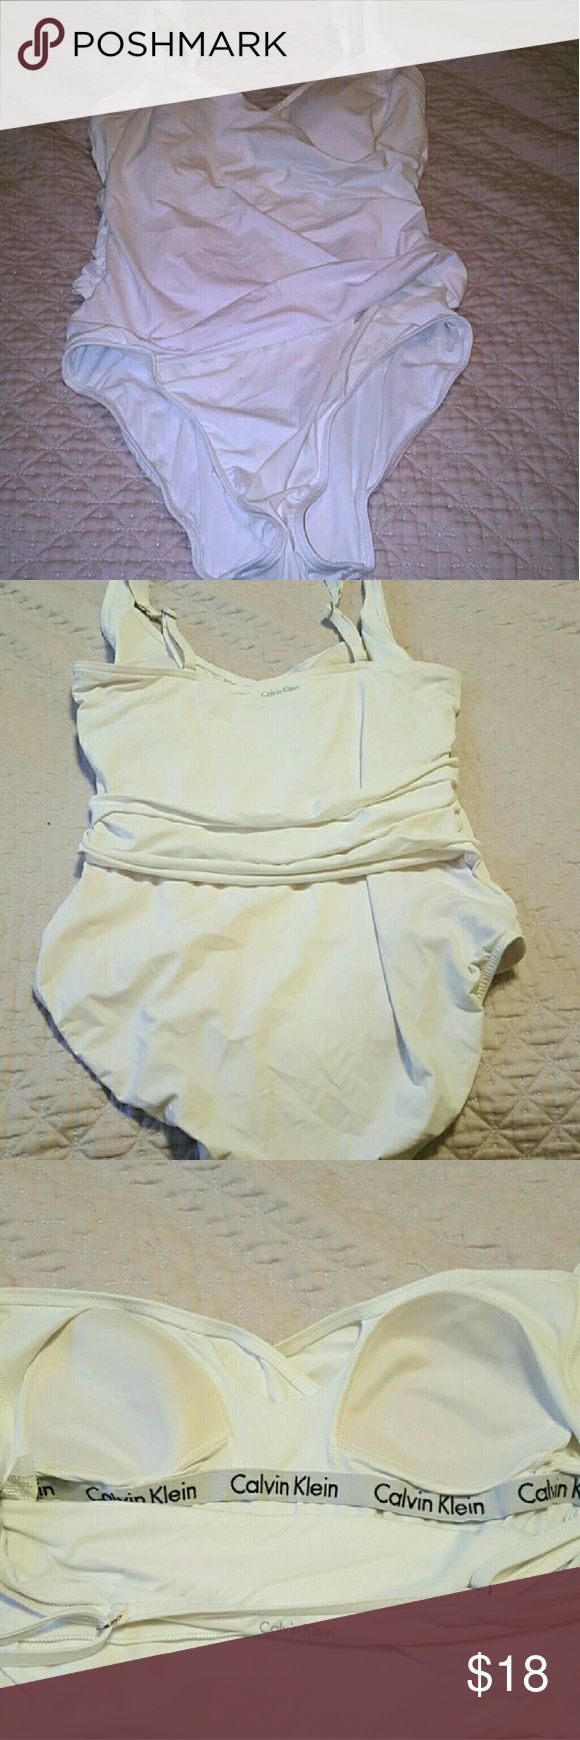 White One Piece Calvin Klein Swimsuit Nice and flattering Calvin Klein one piece white swimsuit. One piece with miracle tummy technology. Not see thru at all. Lost wait and doesn''t fit me. Great condition!! Calvin Klein Swim One Pieces